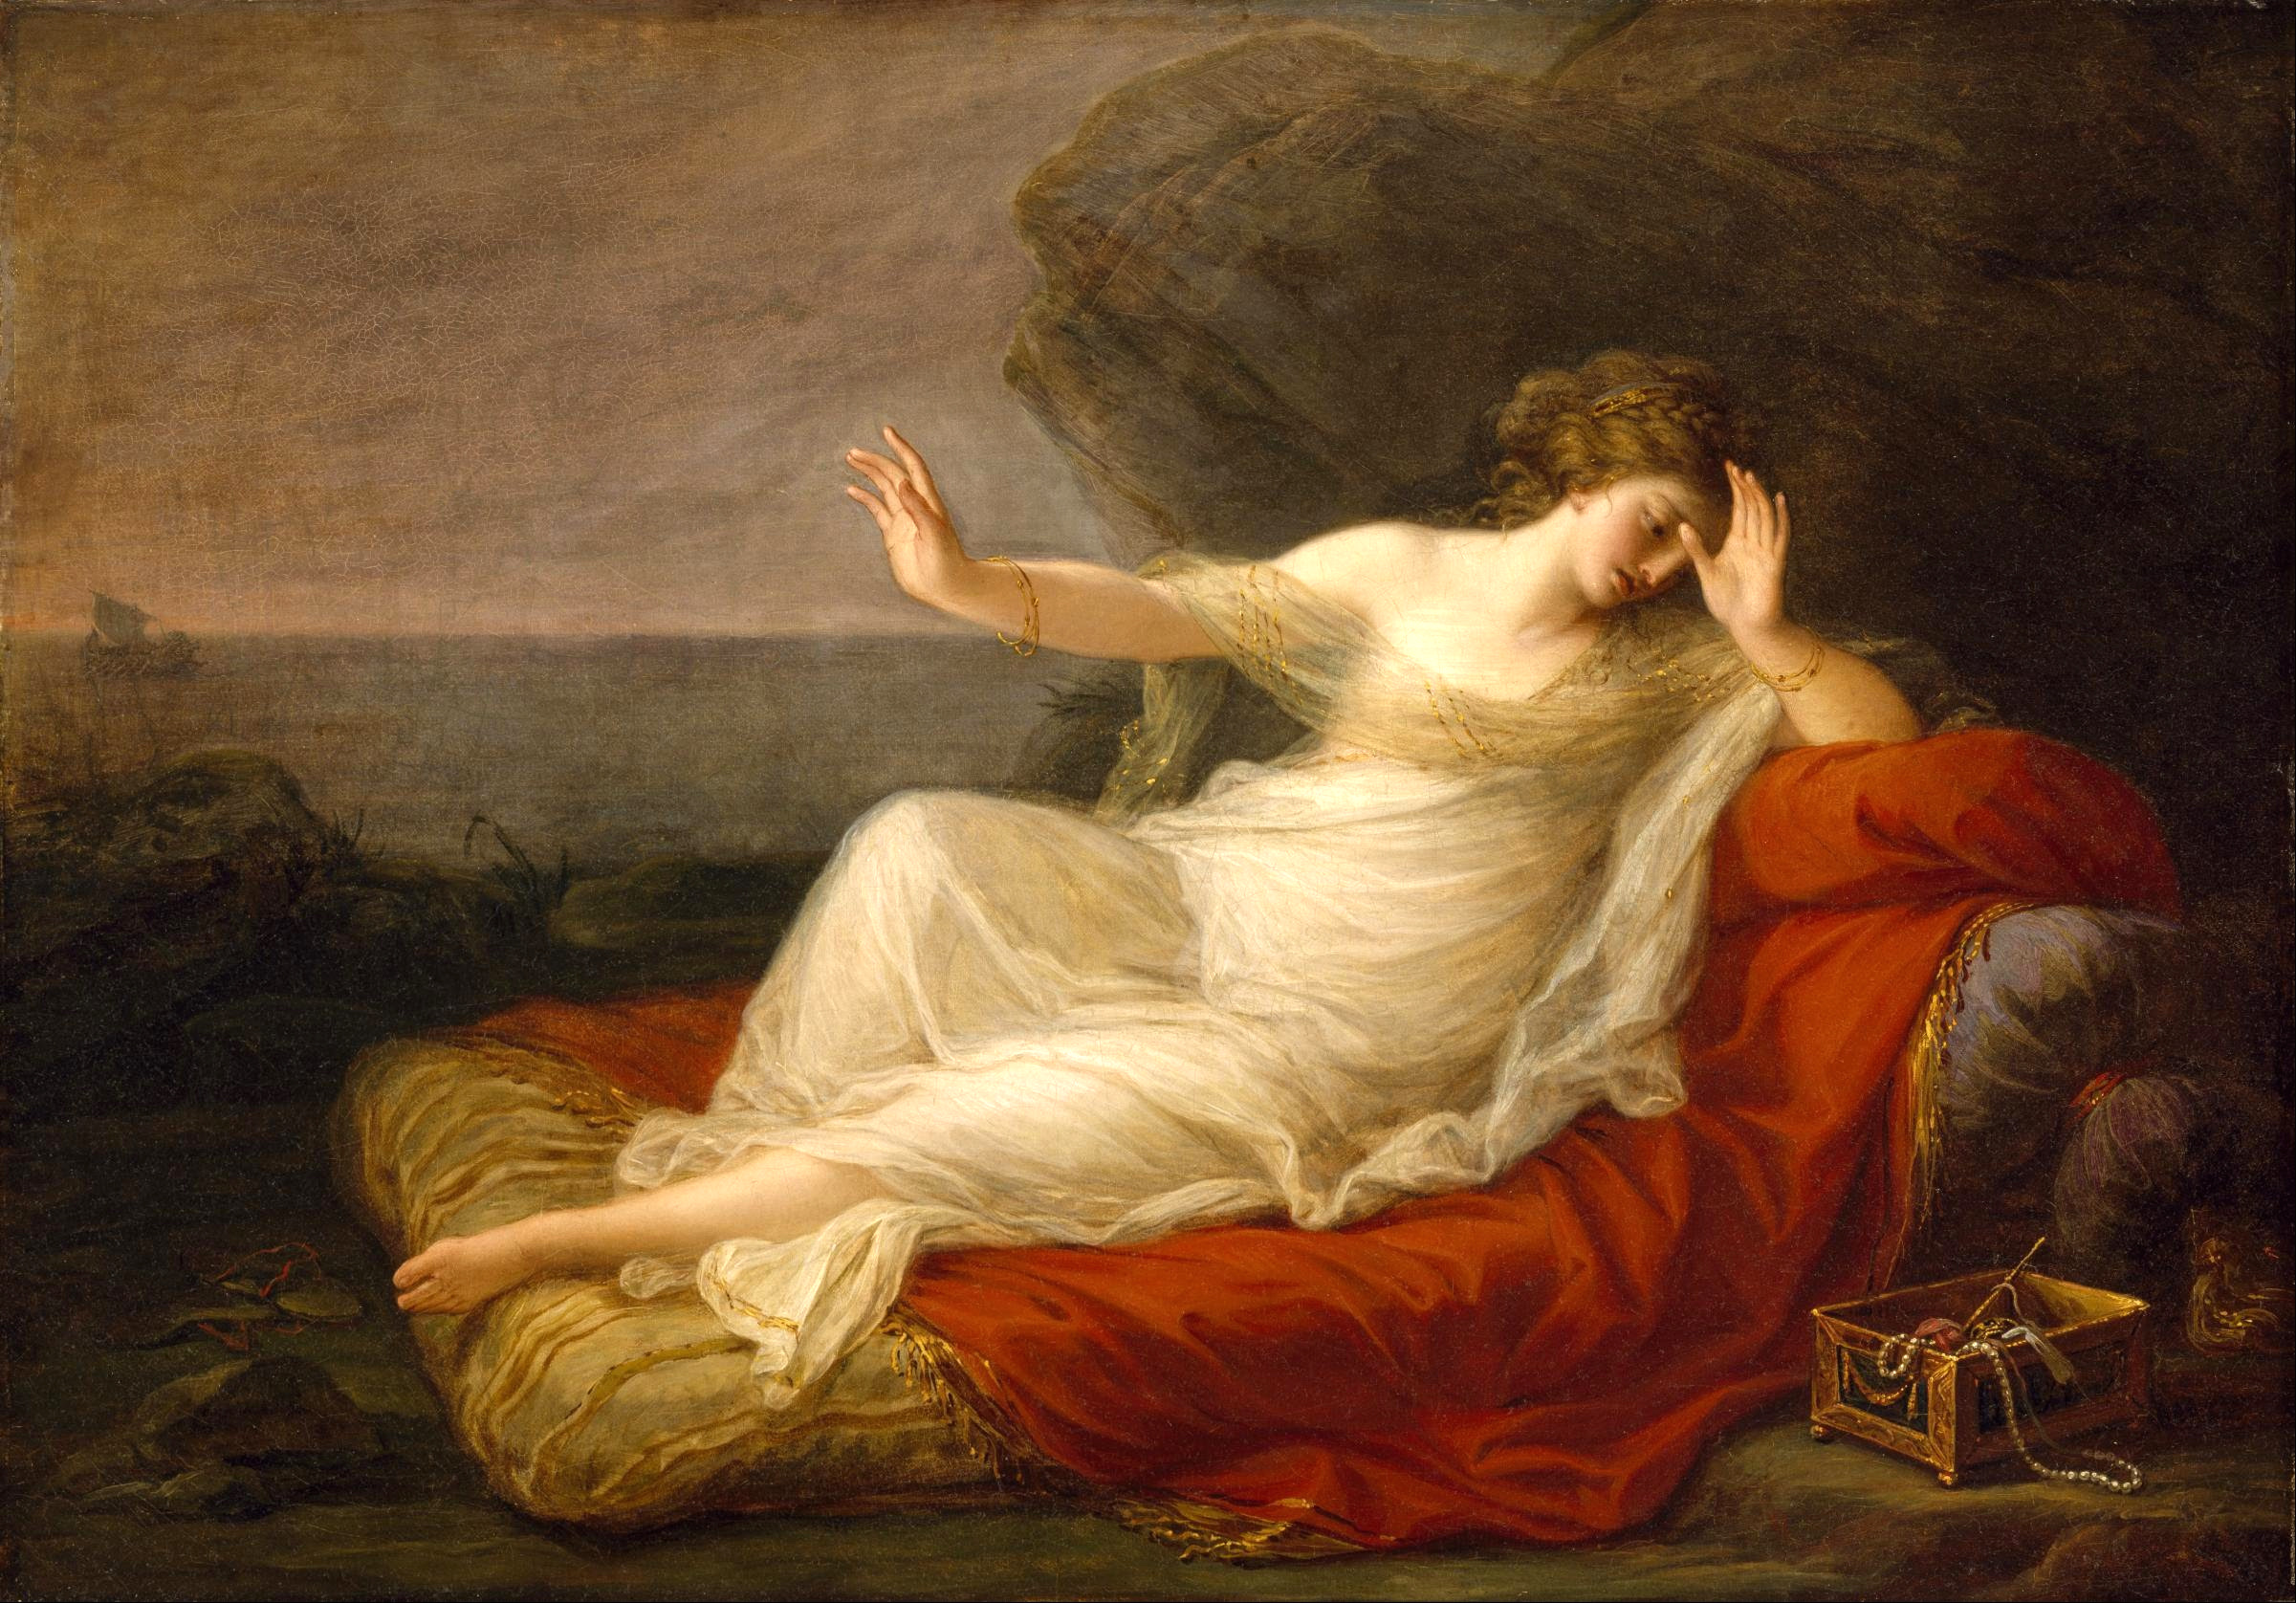 Angelica_Kauffmann_-_Ariadne_Abandoned_by_Theseus